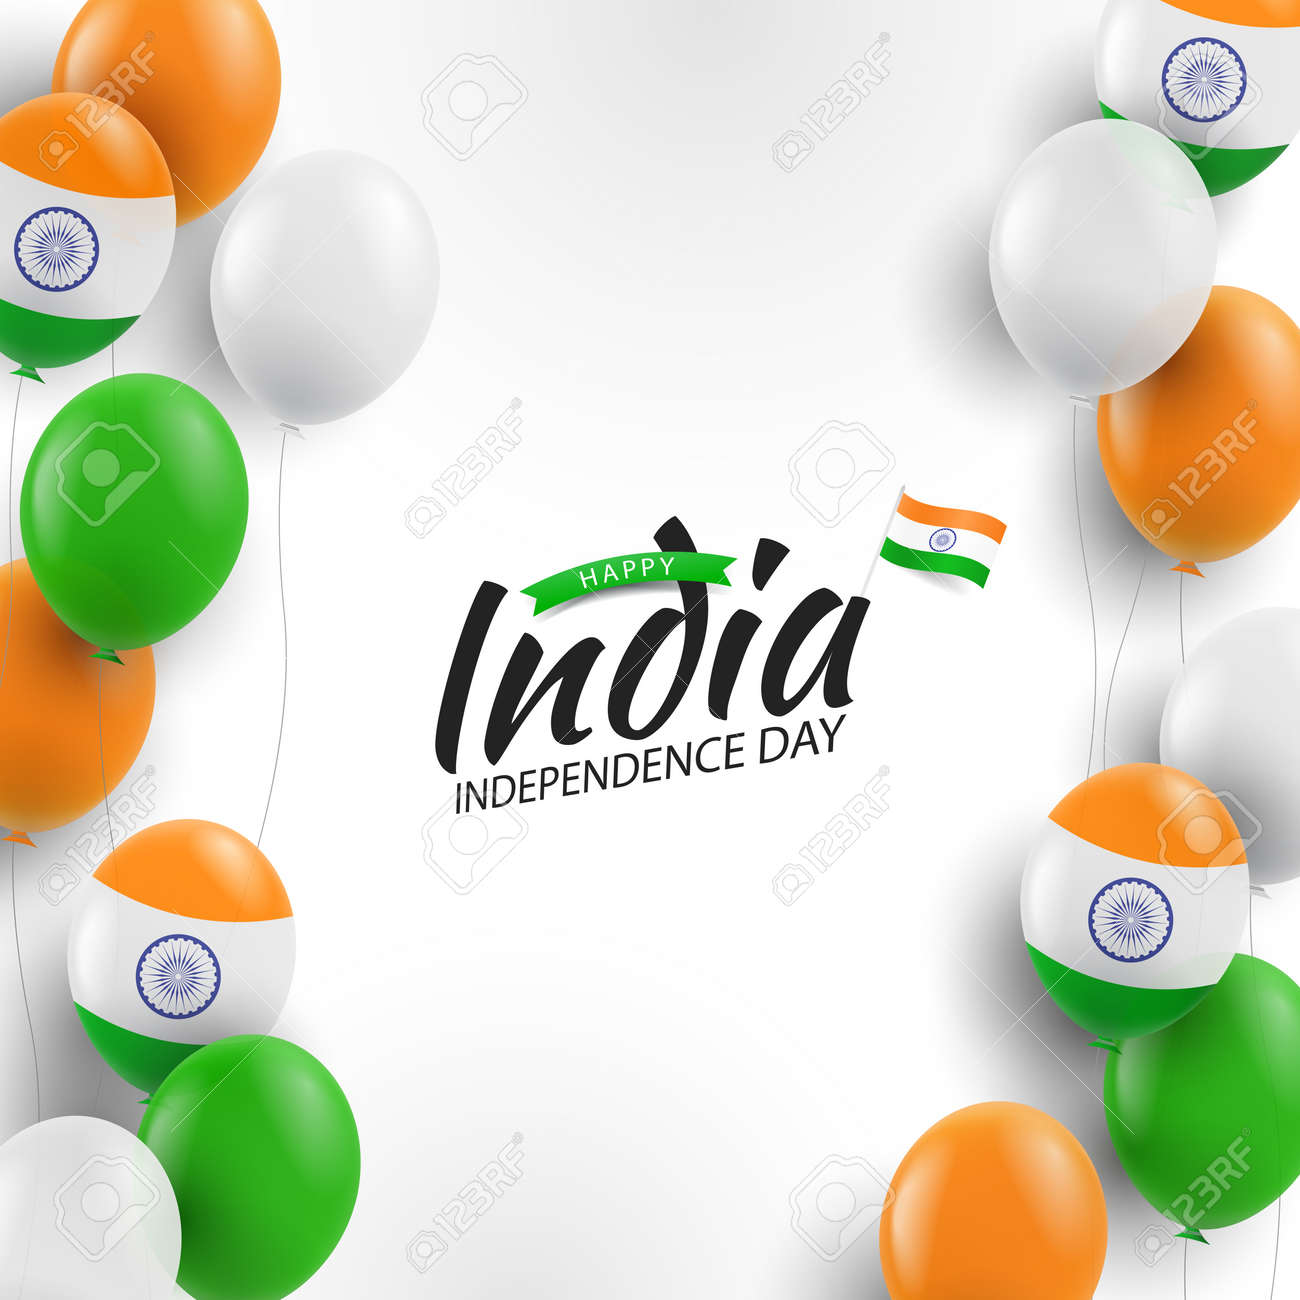 Illustration of India Independence Day. - 171112556